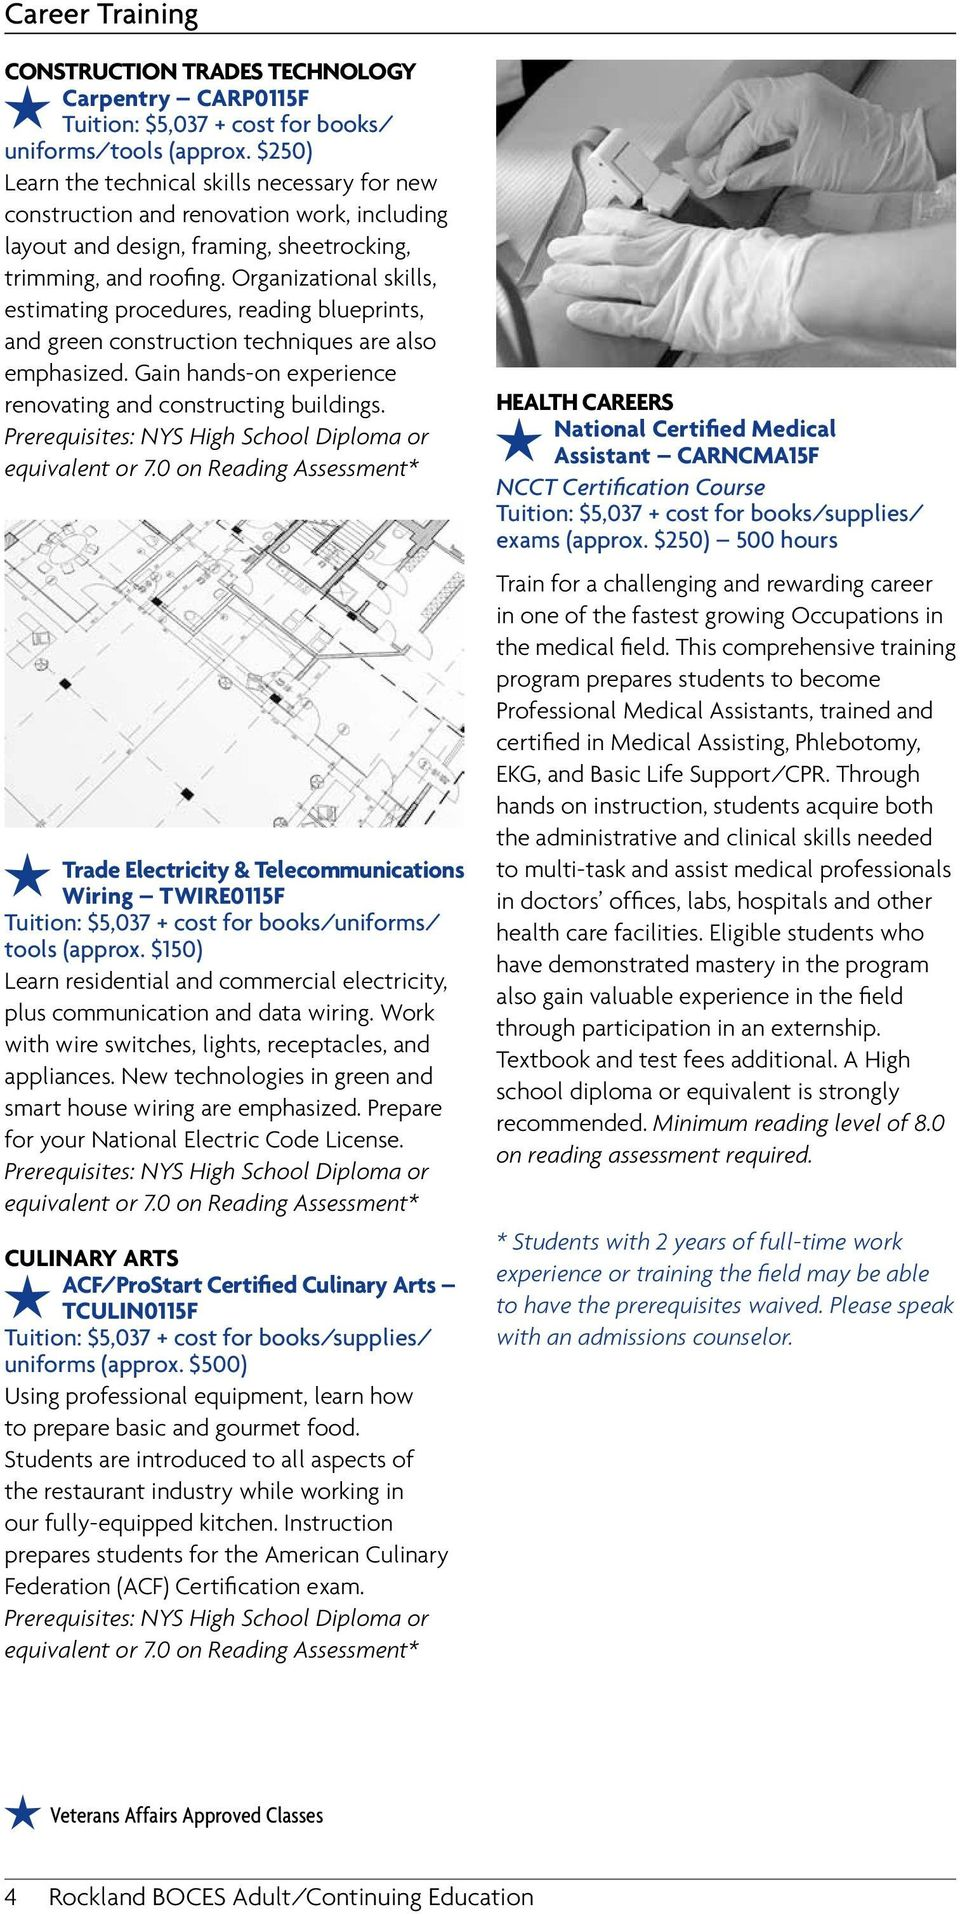 Adult Education Courses Pdf House Wiring Techniques Organizational Skills Estimating Procedures Reading Blueprints And Green Construction Are Also Emphasized